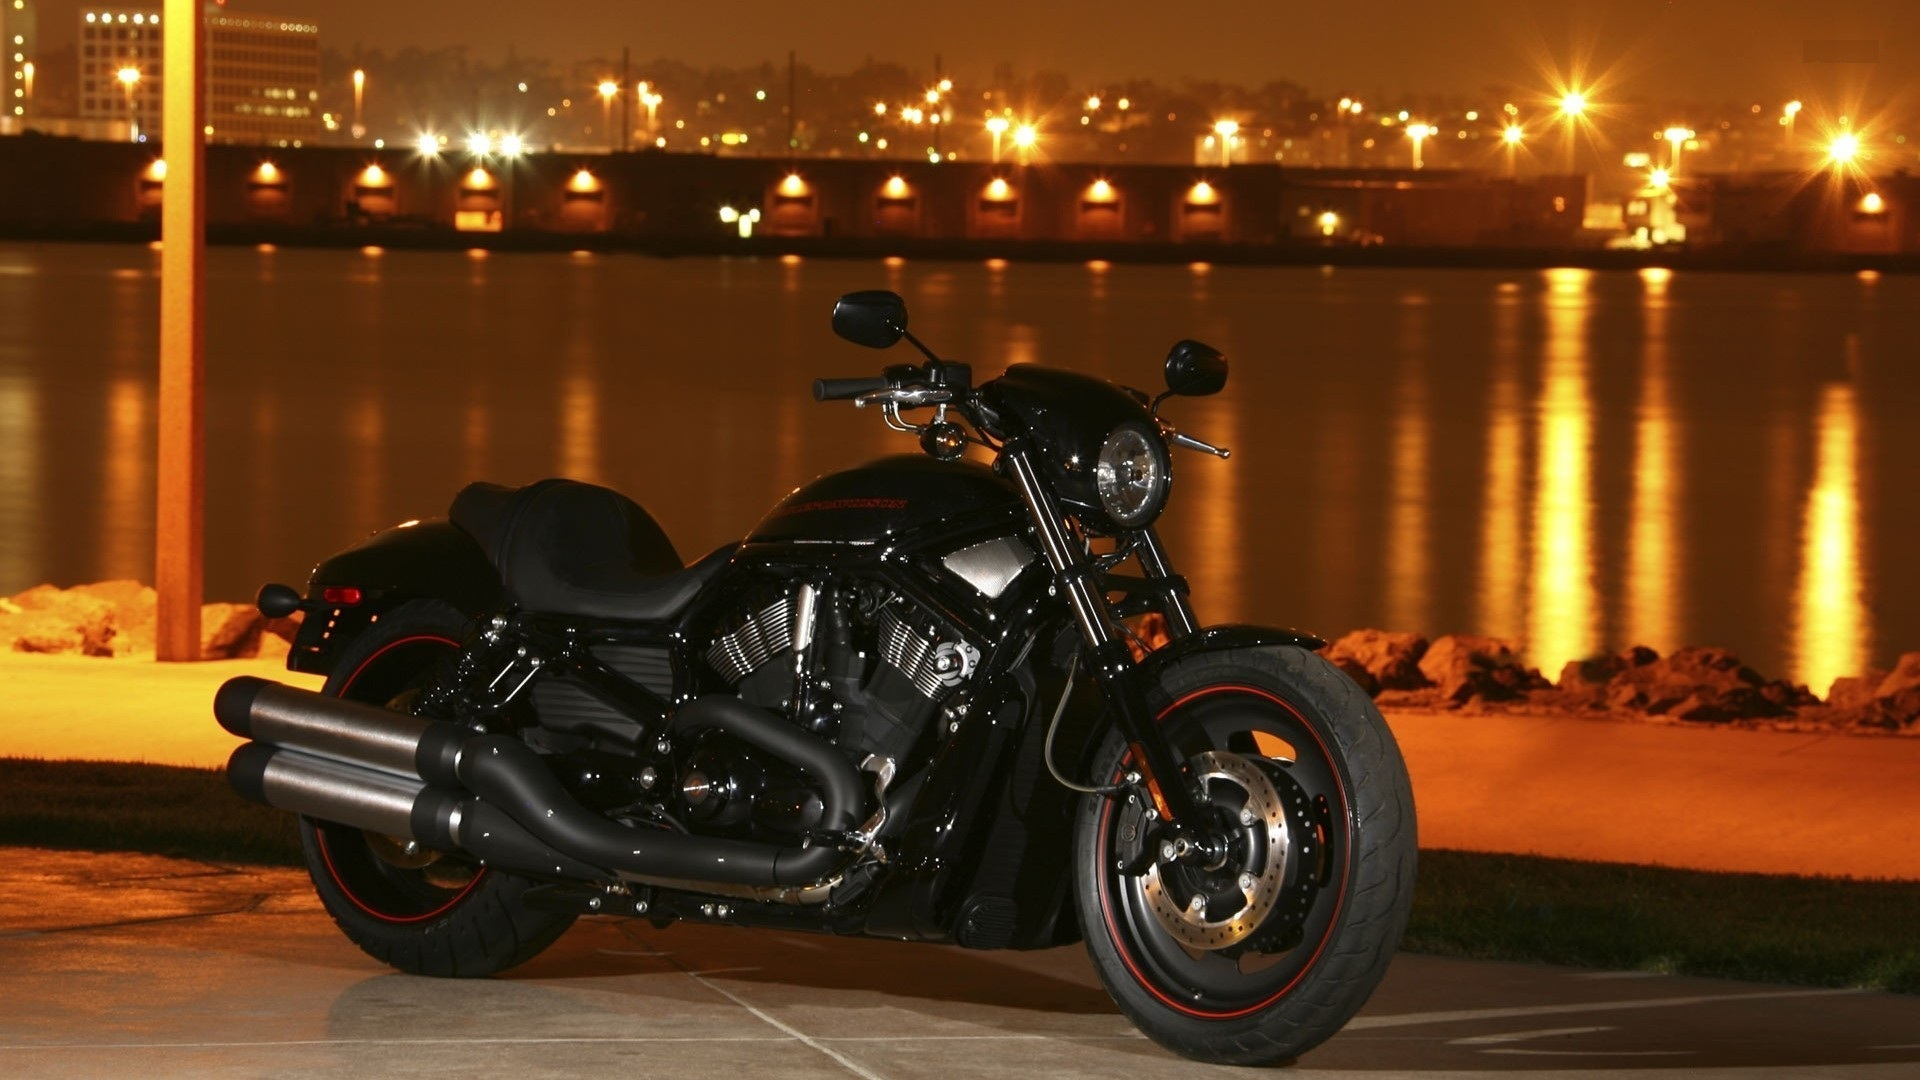 Harley Davidson Pictures Download Desktop Wallpaper Images 1920x1080